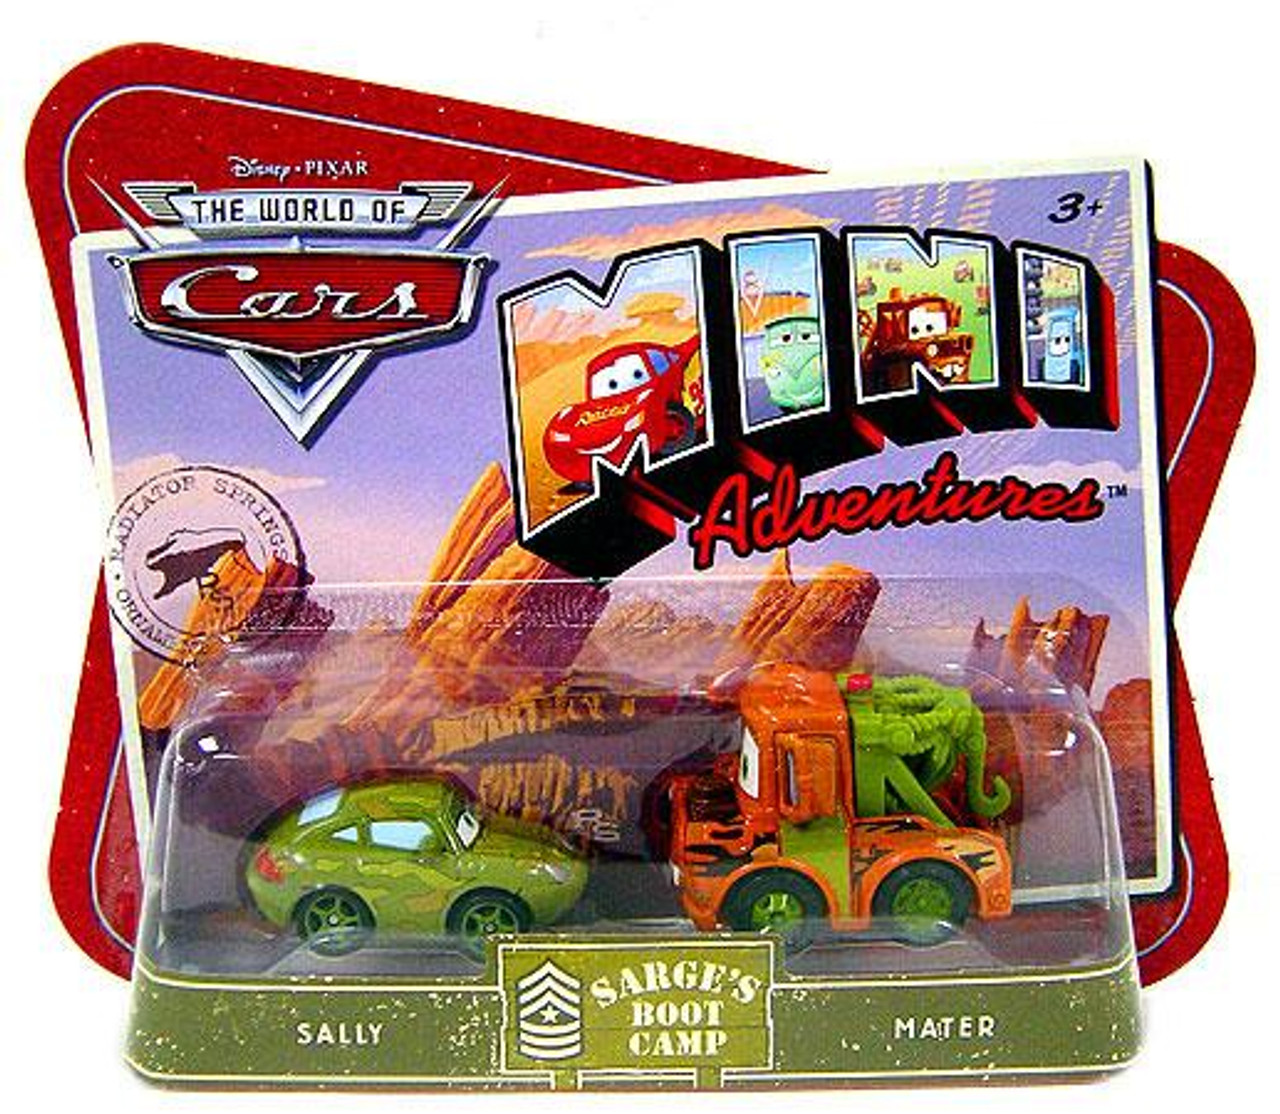 Disney Cars The World of Cars Mini Adventures Sally & Mater Plastic Car 2-Pack [Sarge's Boot Camp]